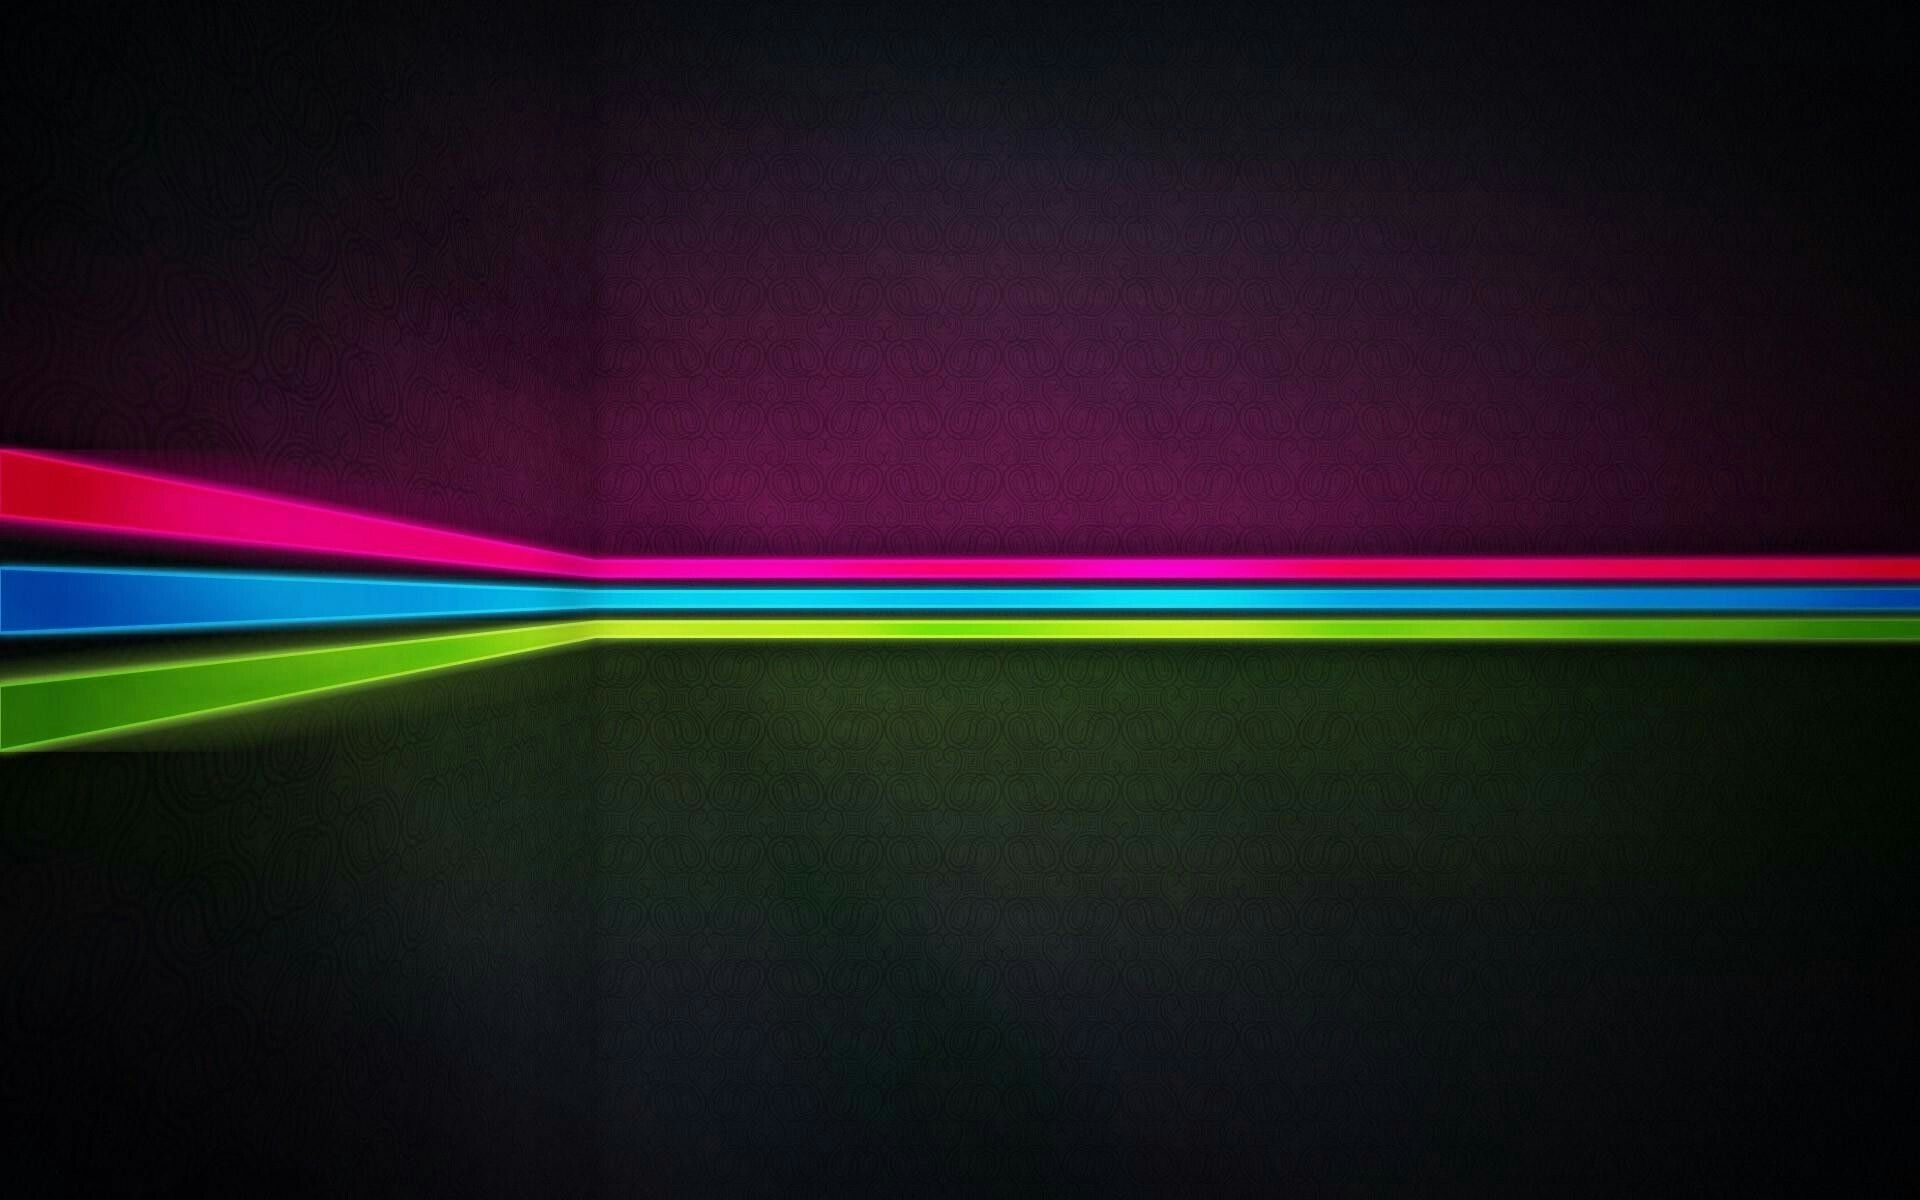 Simple Neon Wallpapers - Top Free Simple Neon Backgrounds ...